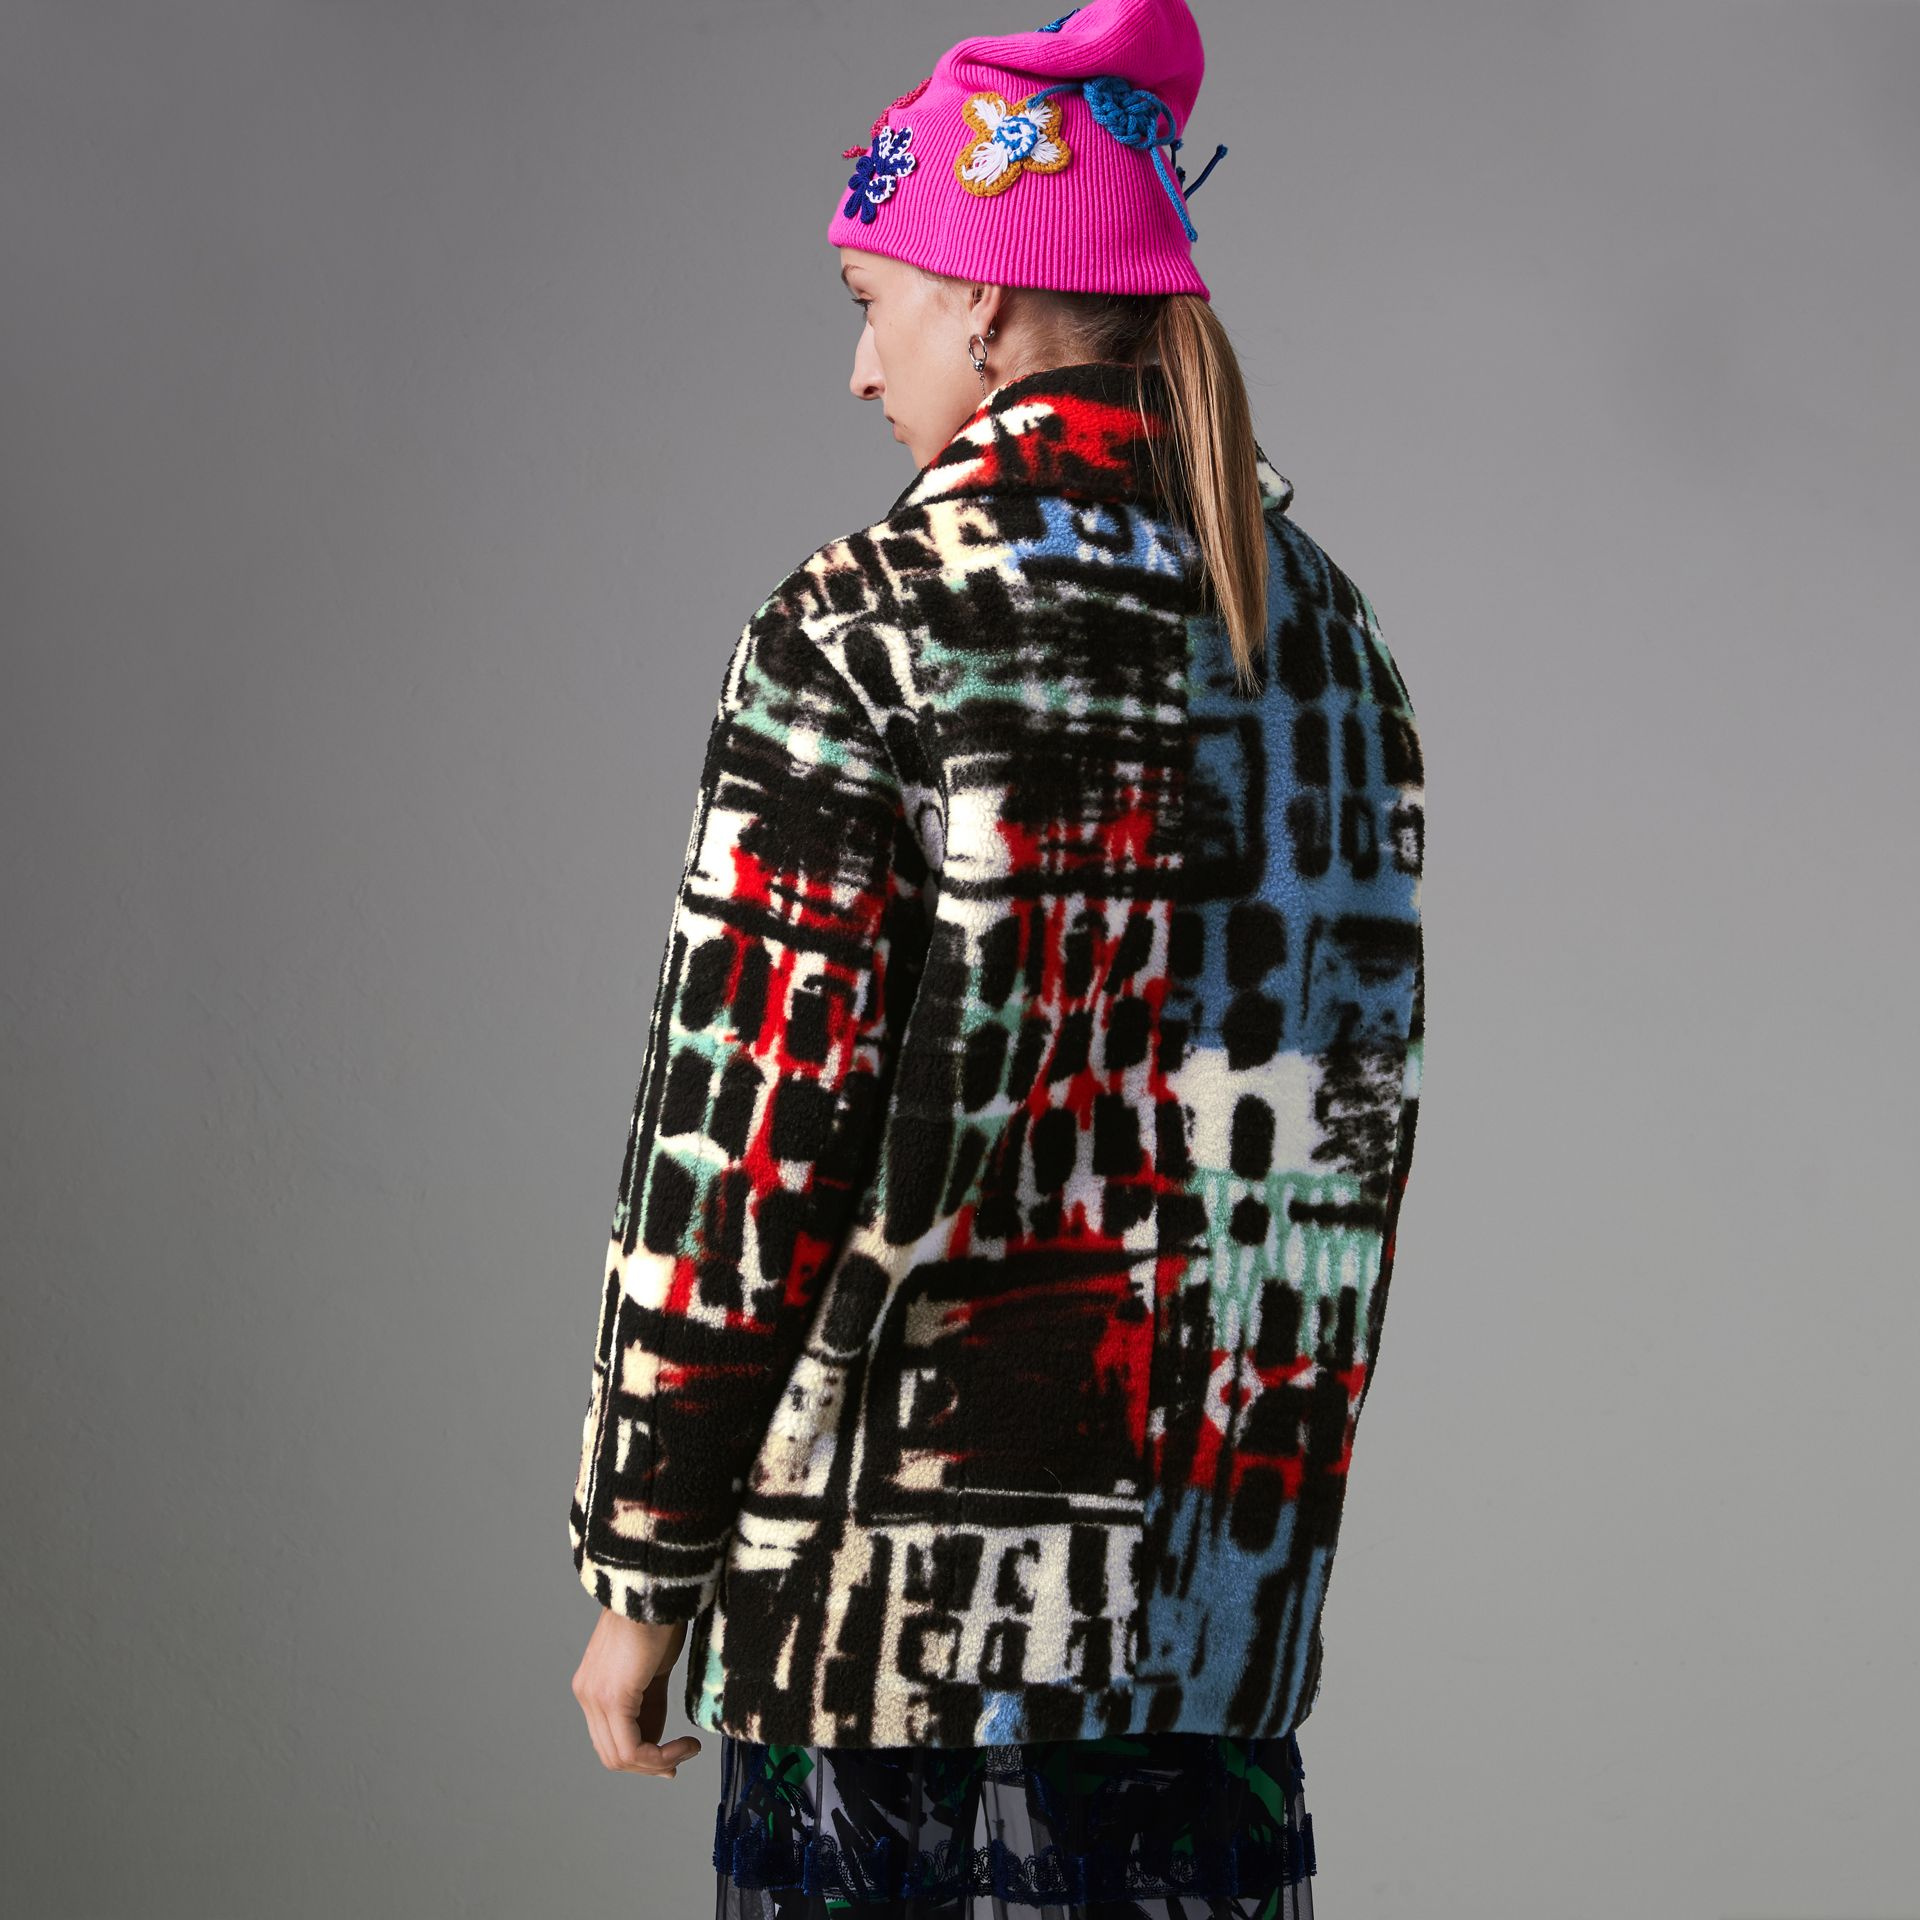 Graffiti Print Shearling Oversized Jacket in Steel Blue - Women | Burberry United States - gallery image 2